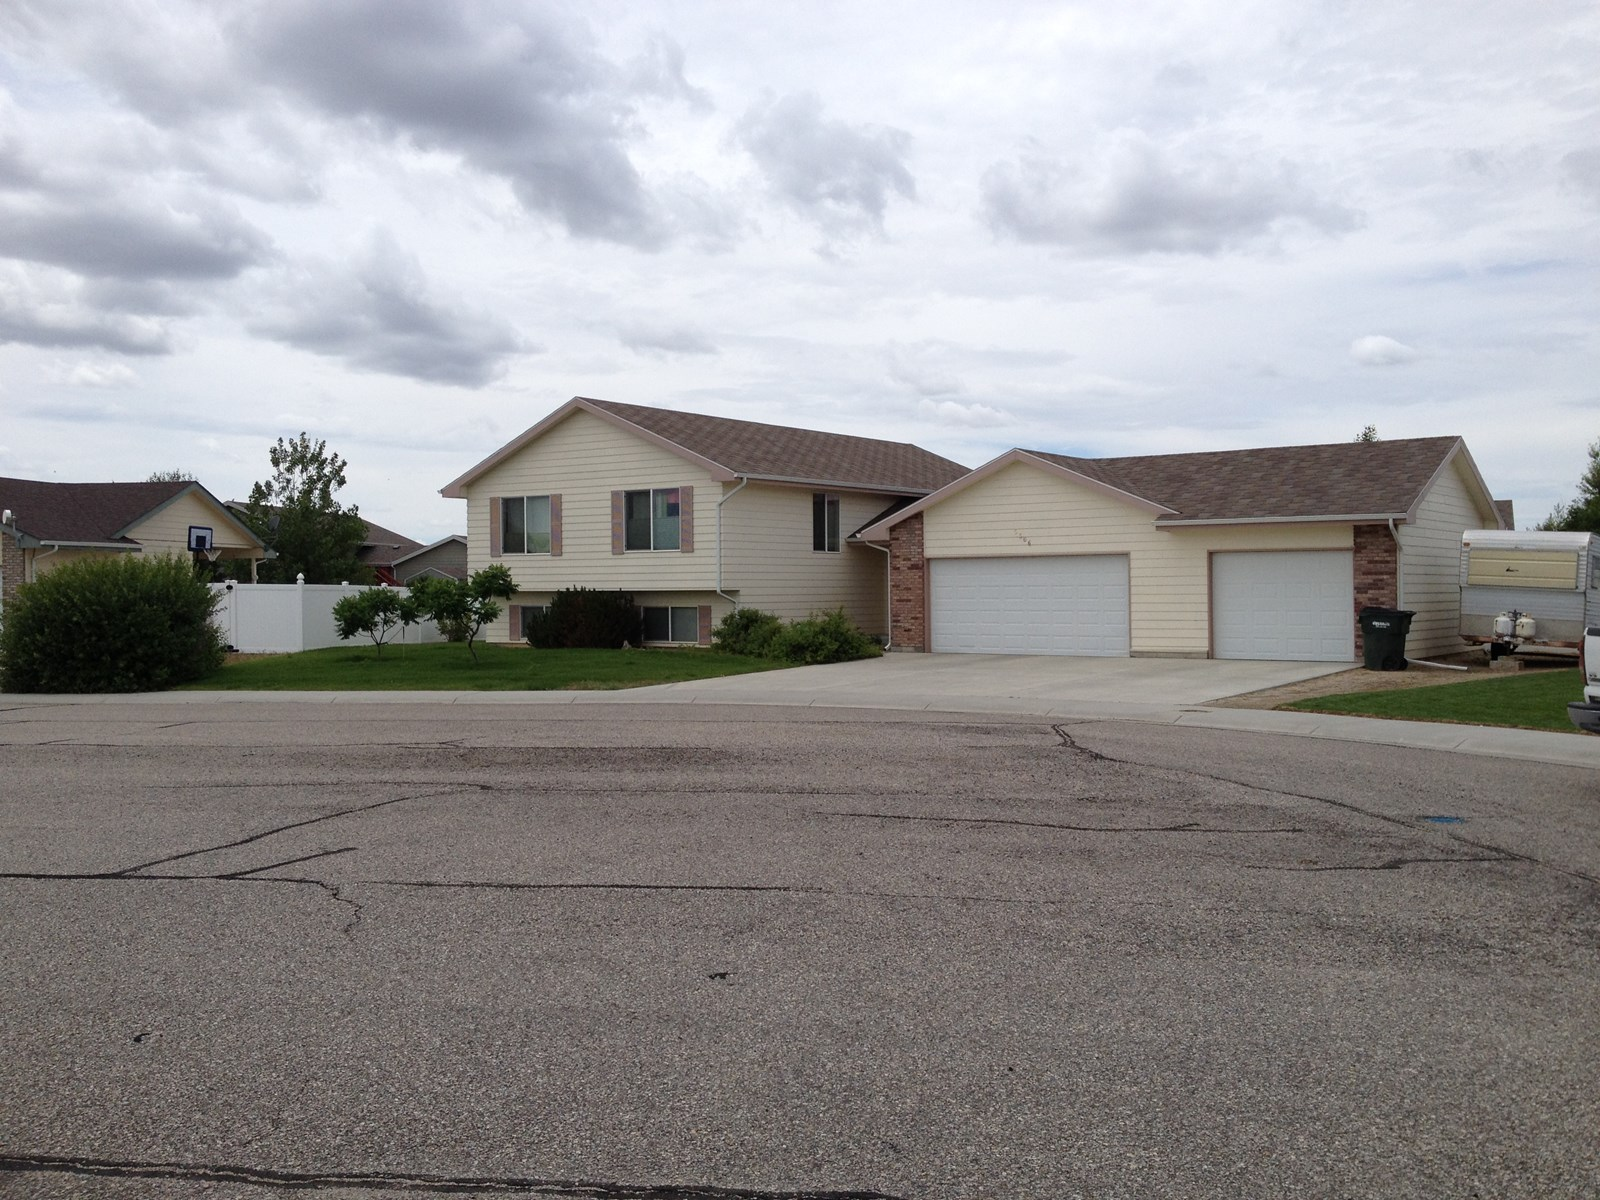 Rural Residential Home